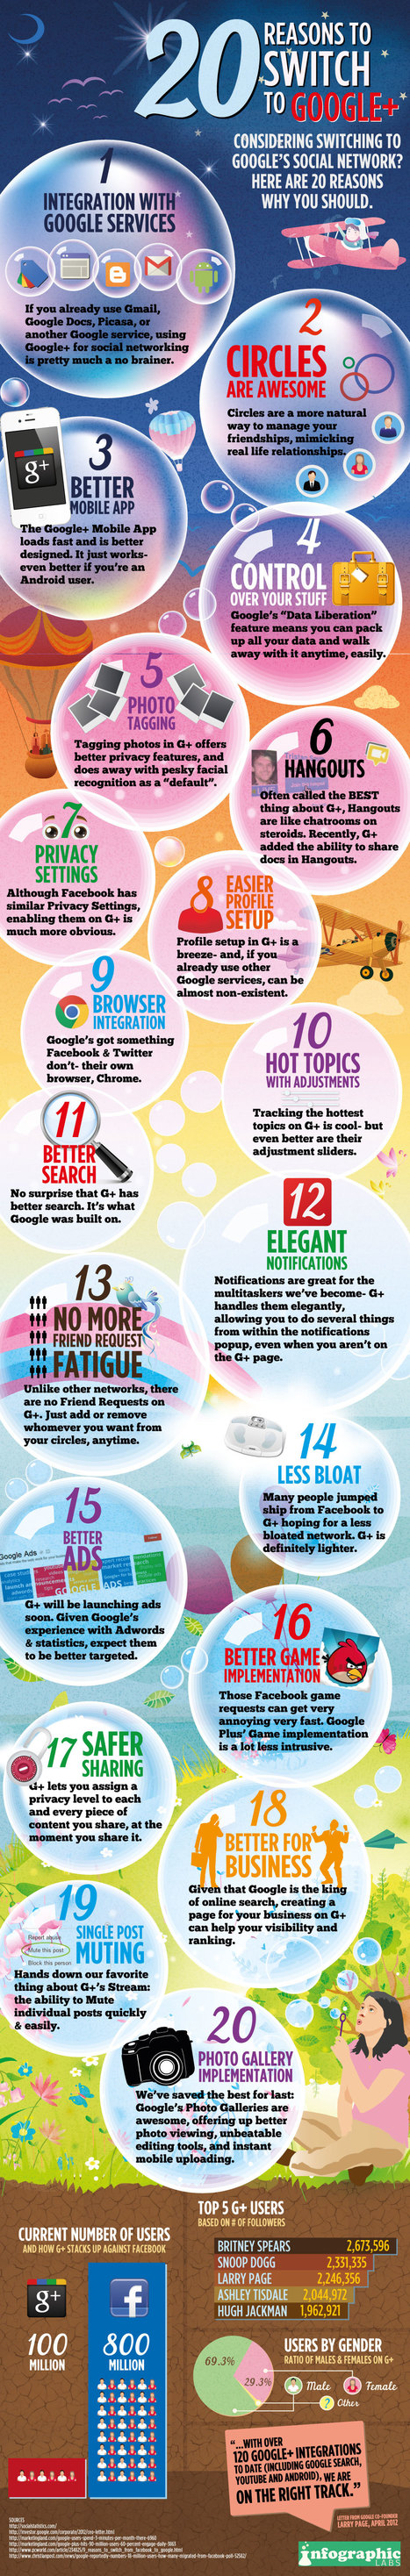 20 Reasons Why you Should Use Google Plus [Infographic] | Personal [e-]Learning Environments | Scoop.it